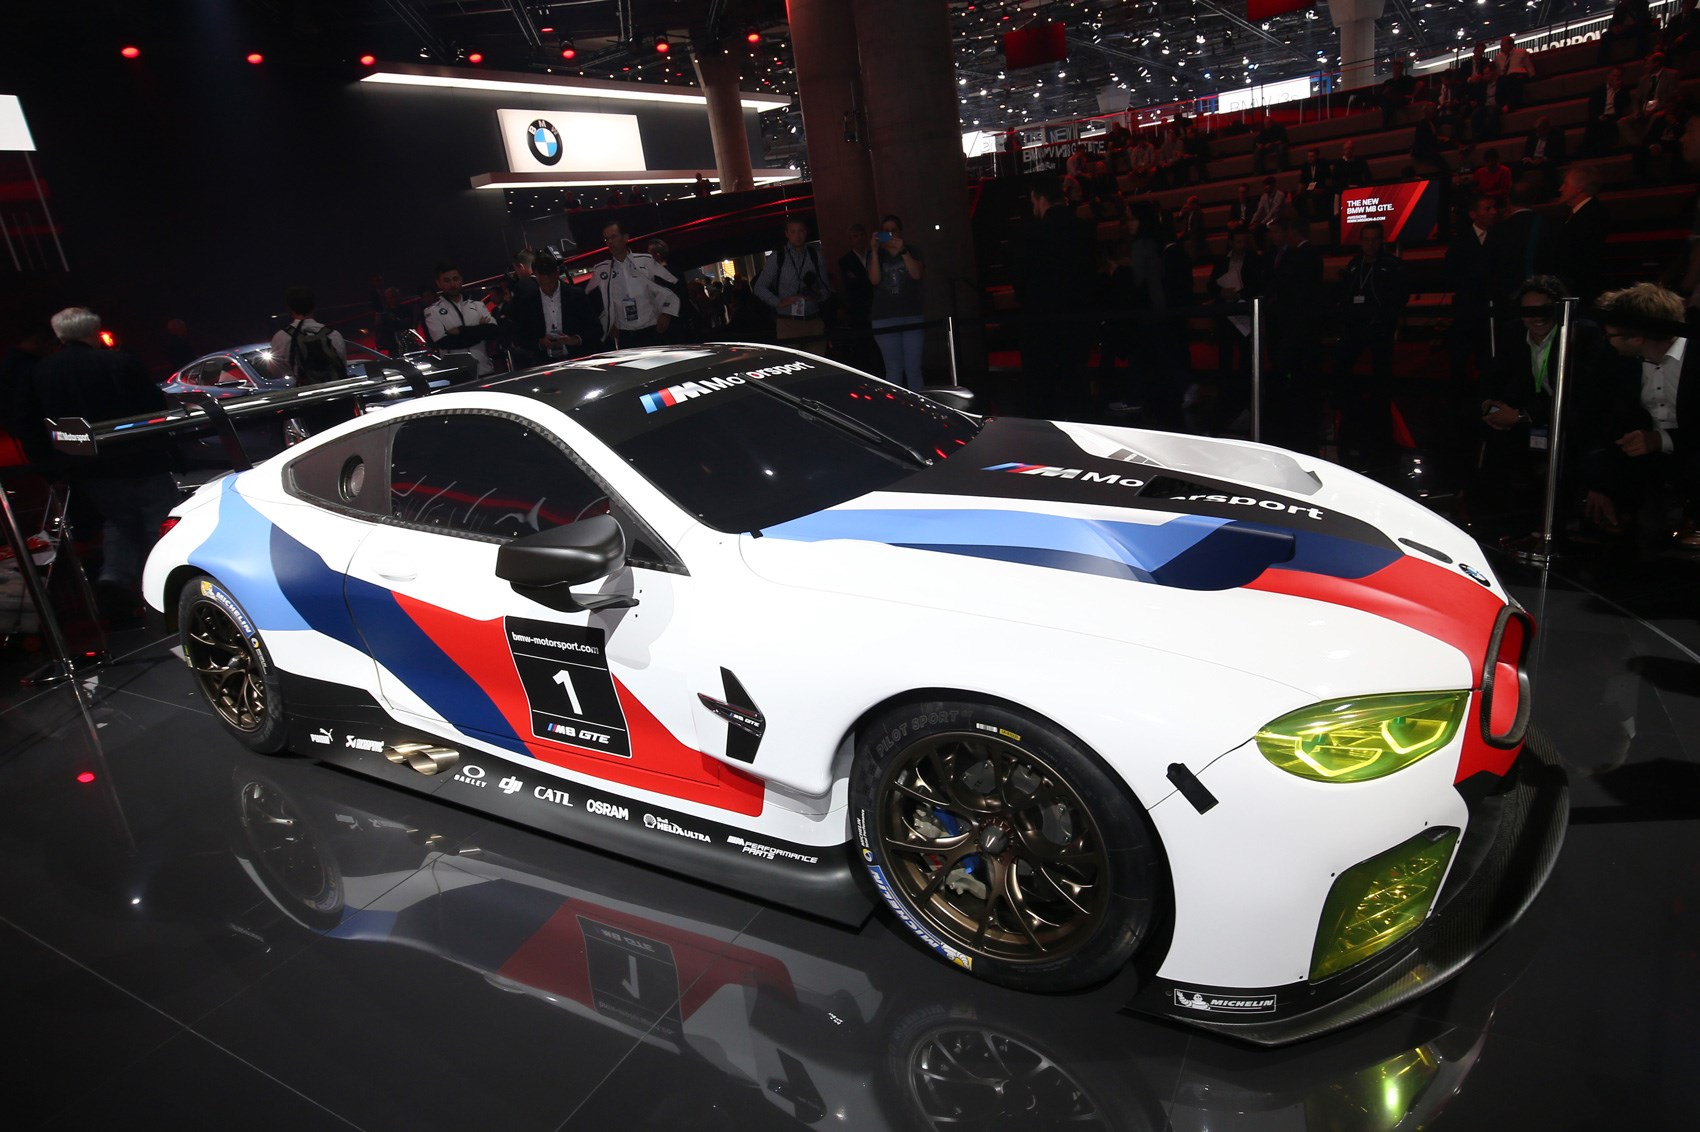 the 8 series brings its a game new bmw m8 gte unveiled by. Black Bedroom Furniture Sets. Home Design Ideas